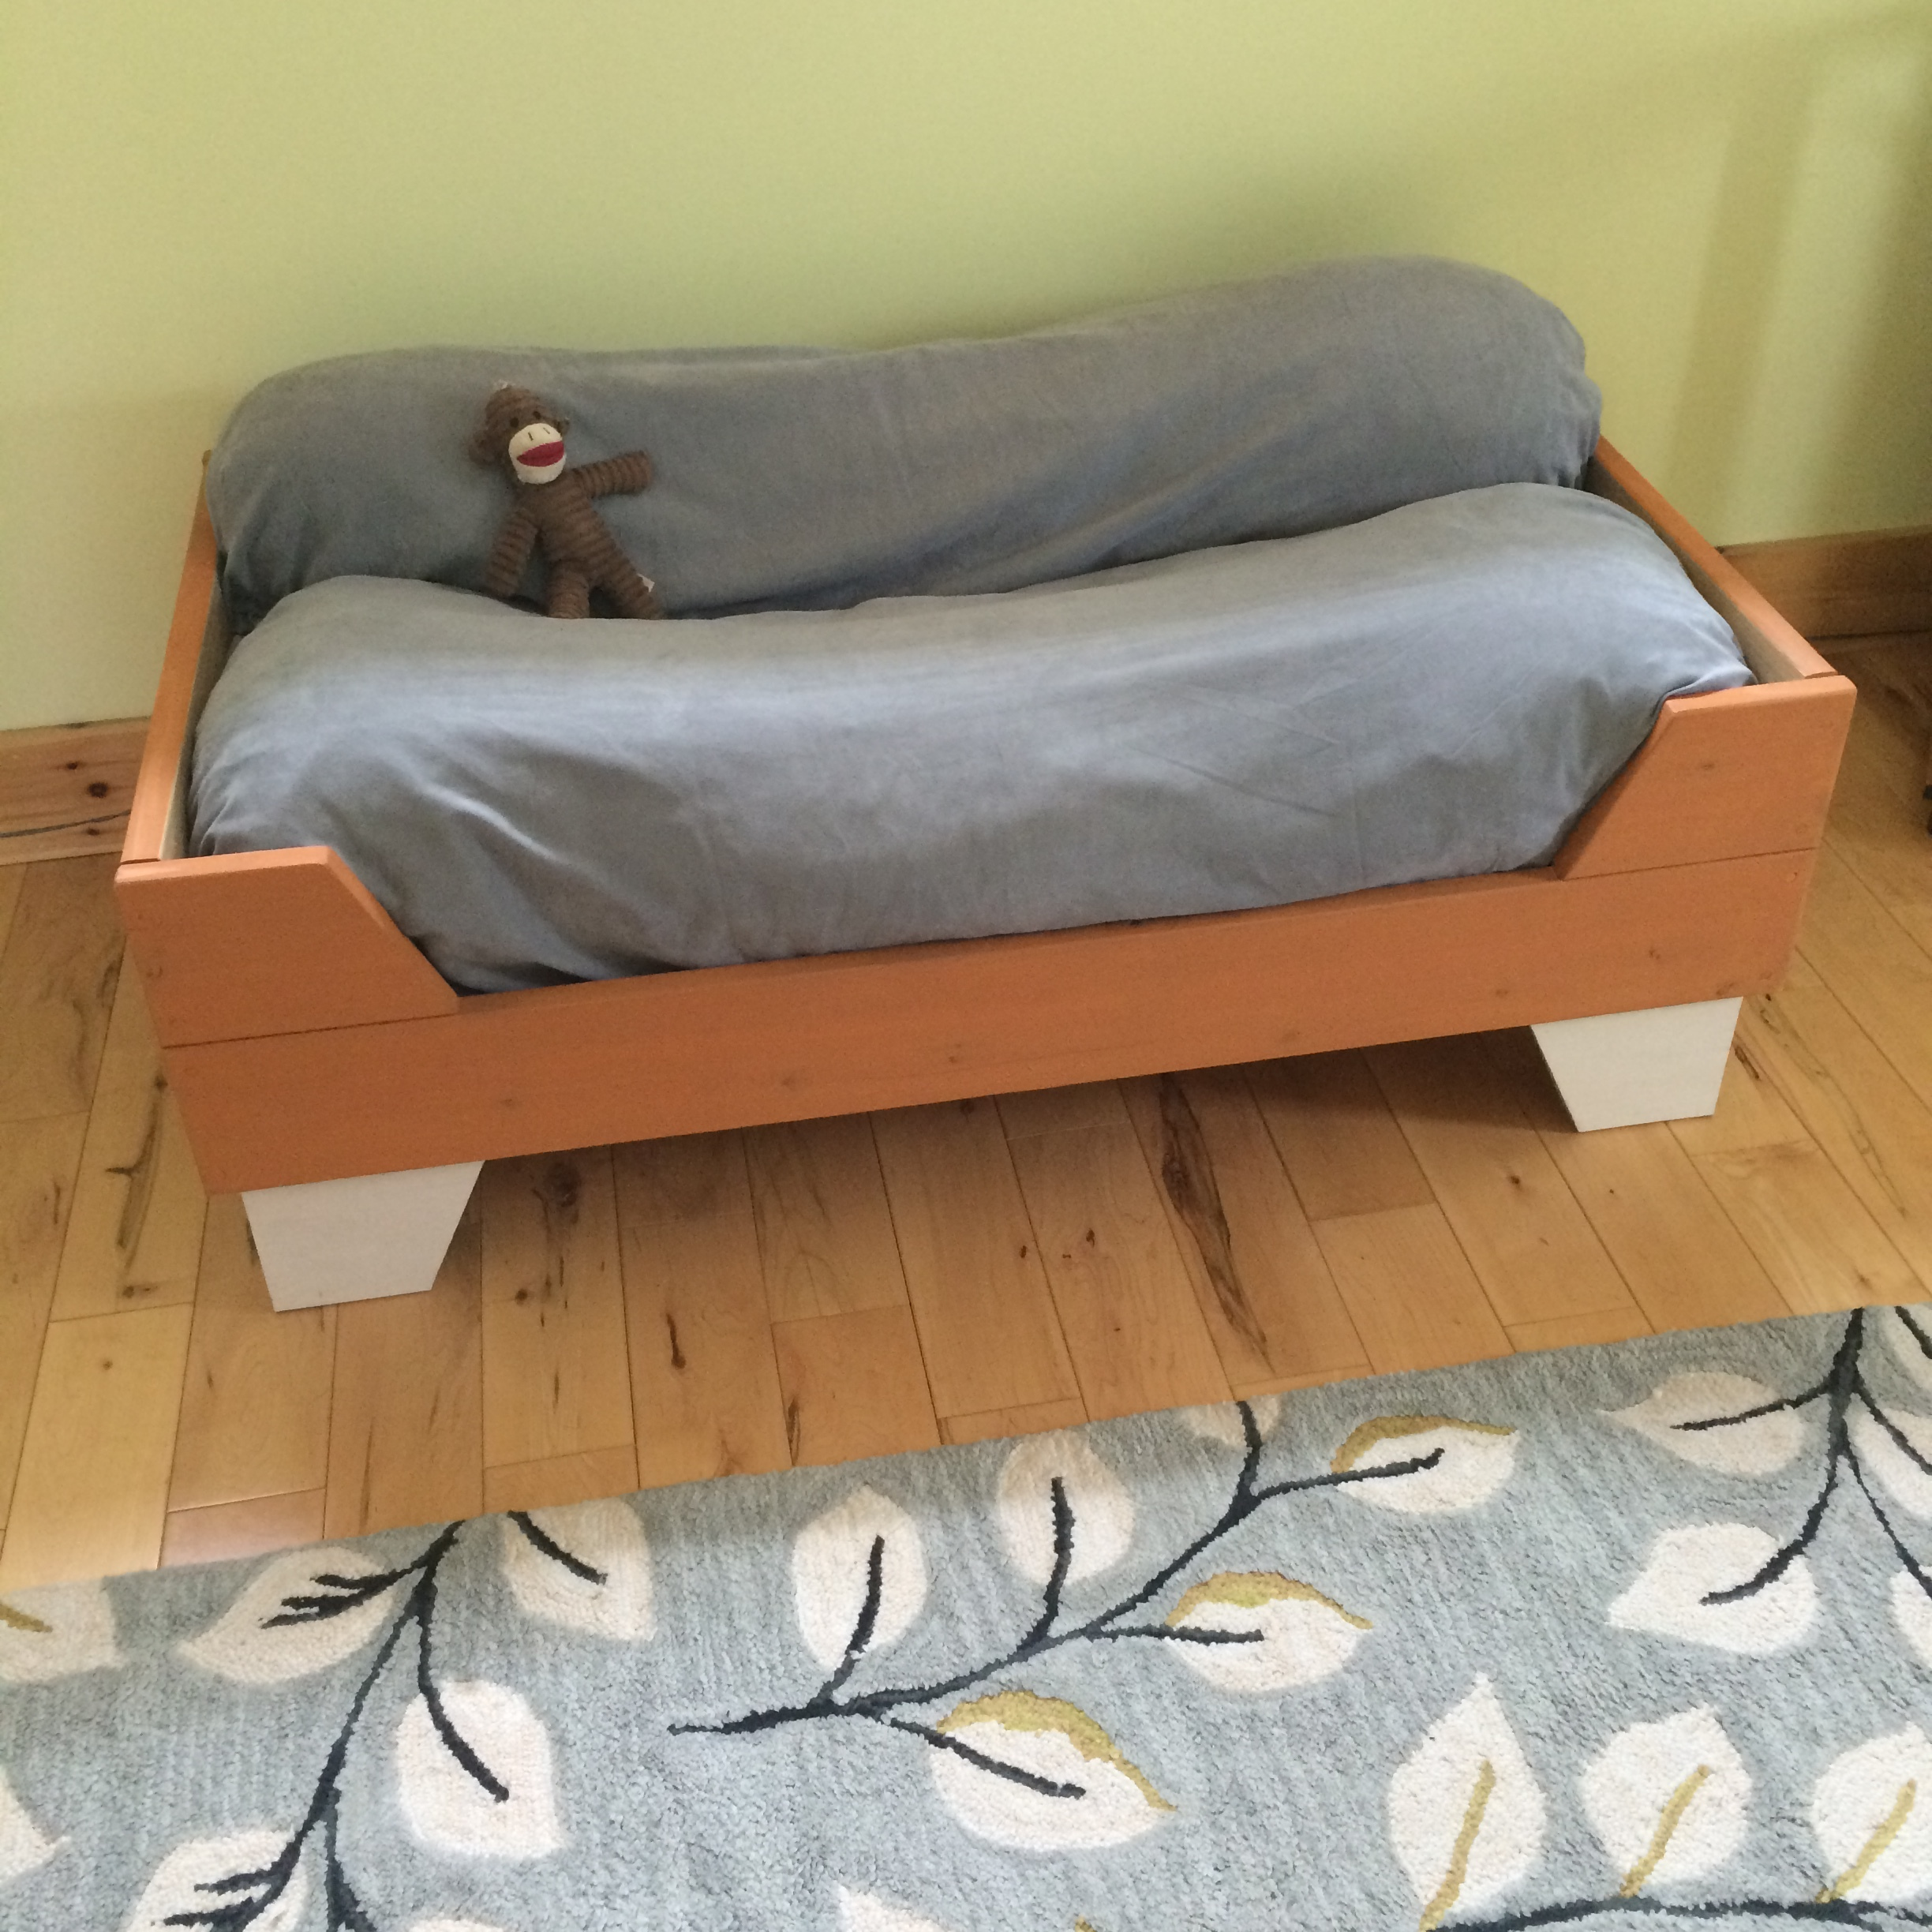 Make it Cozy - Our cedar dog bed frames hug the interior cushion to create a very plush and super cozy spot for your furry friends - don't be surprised if the cat tries to take over.